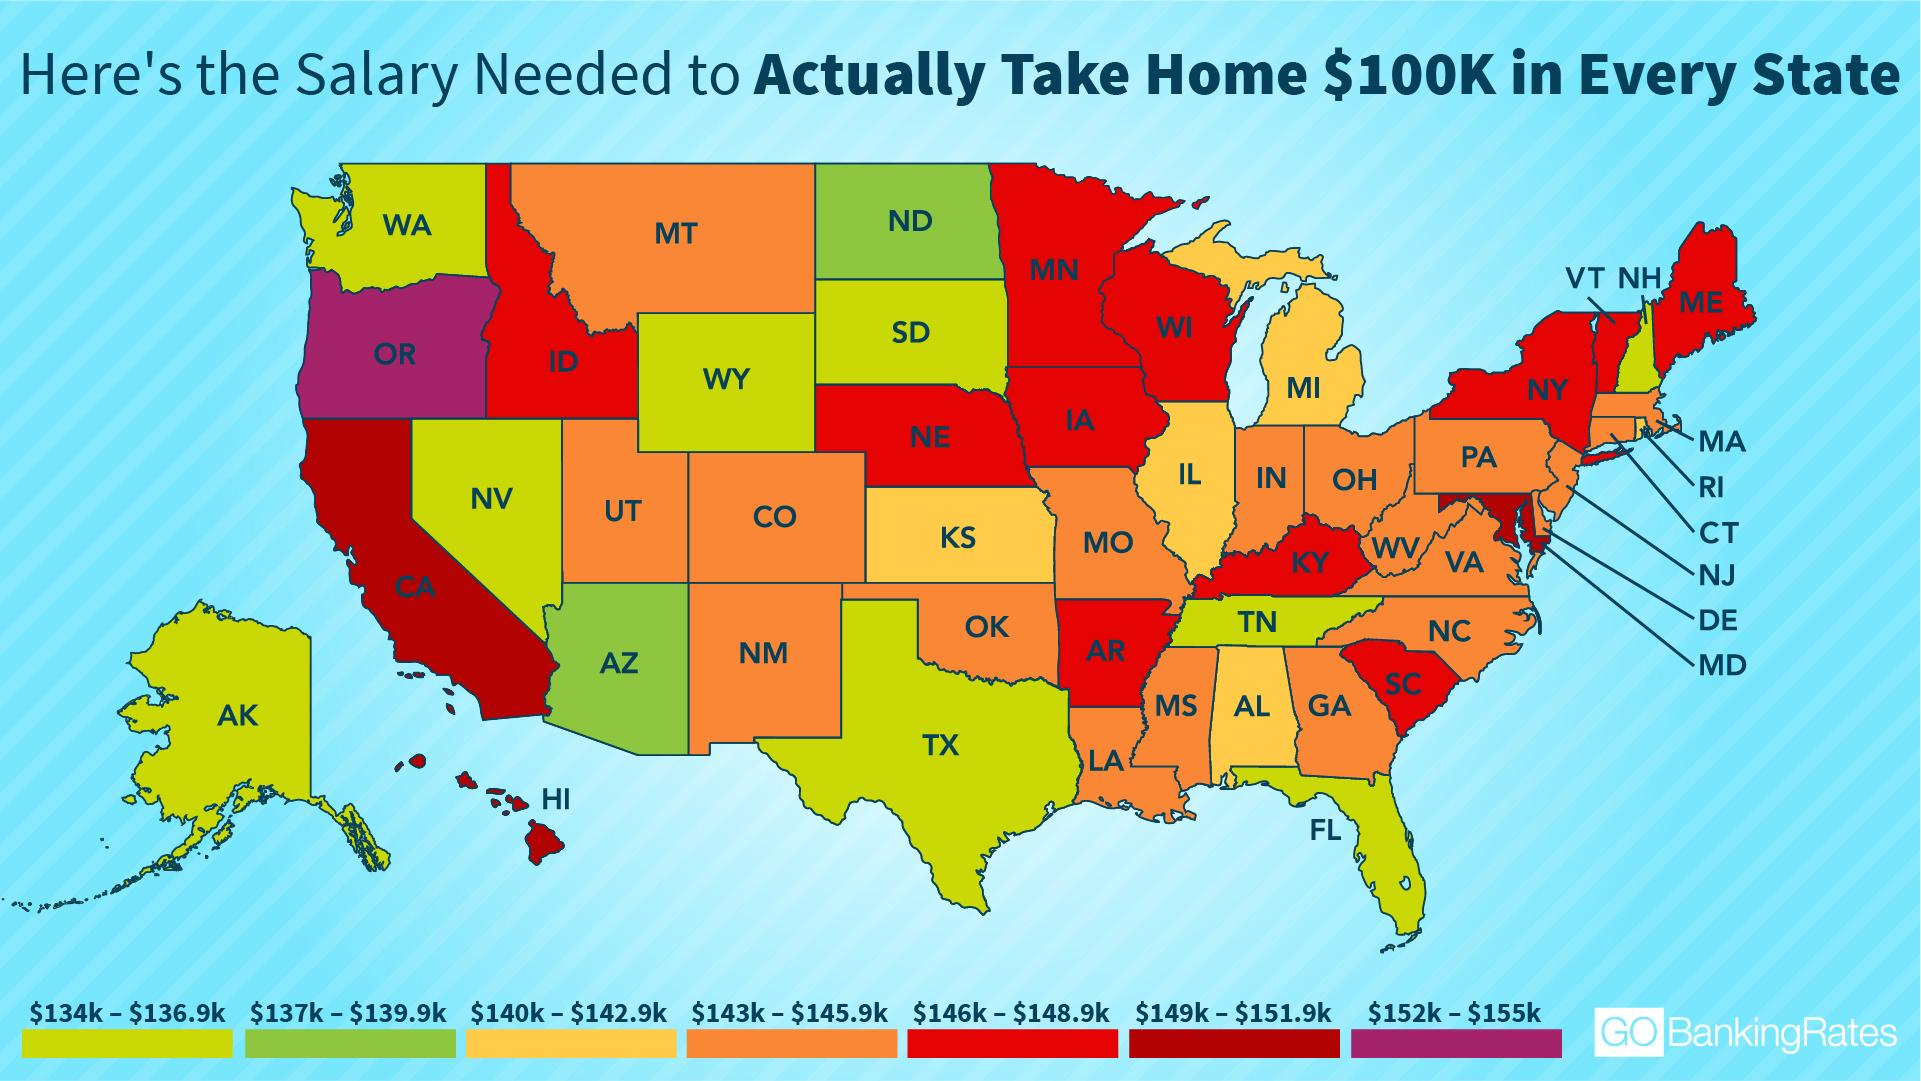 salary needed to take home $100k